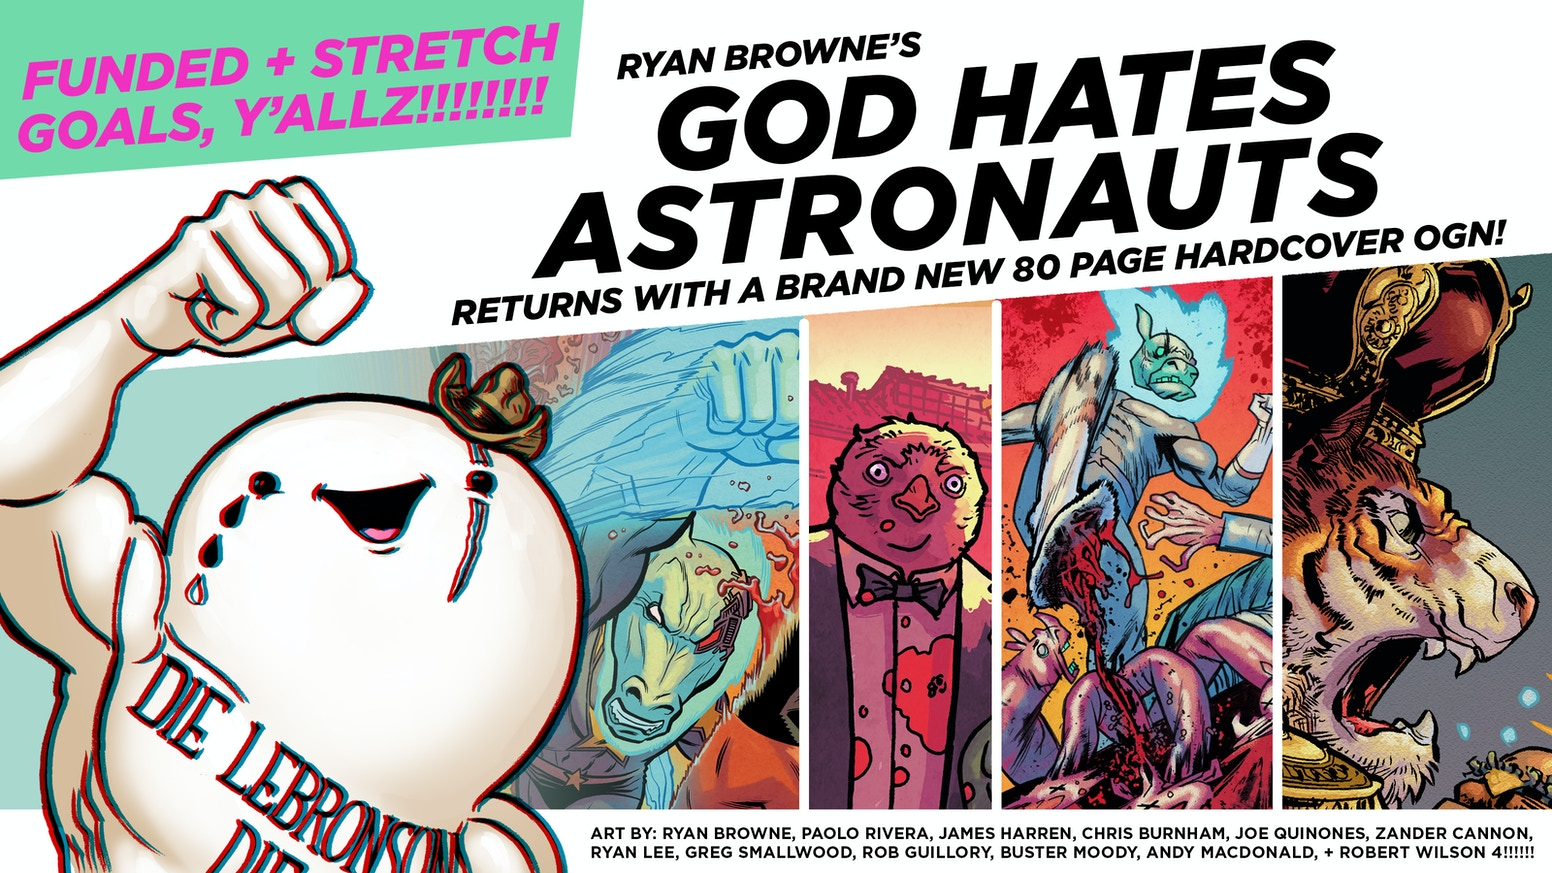 The brand-new hardcover return of the Harvey Award losing comic book, GOD HATES ASTRONAUTS! Art by Ryan Browne, Paolo Rivera, + more!